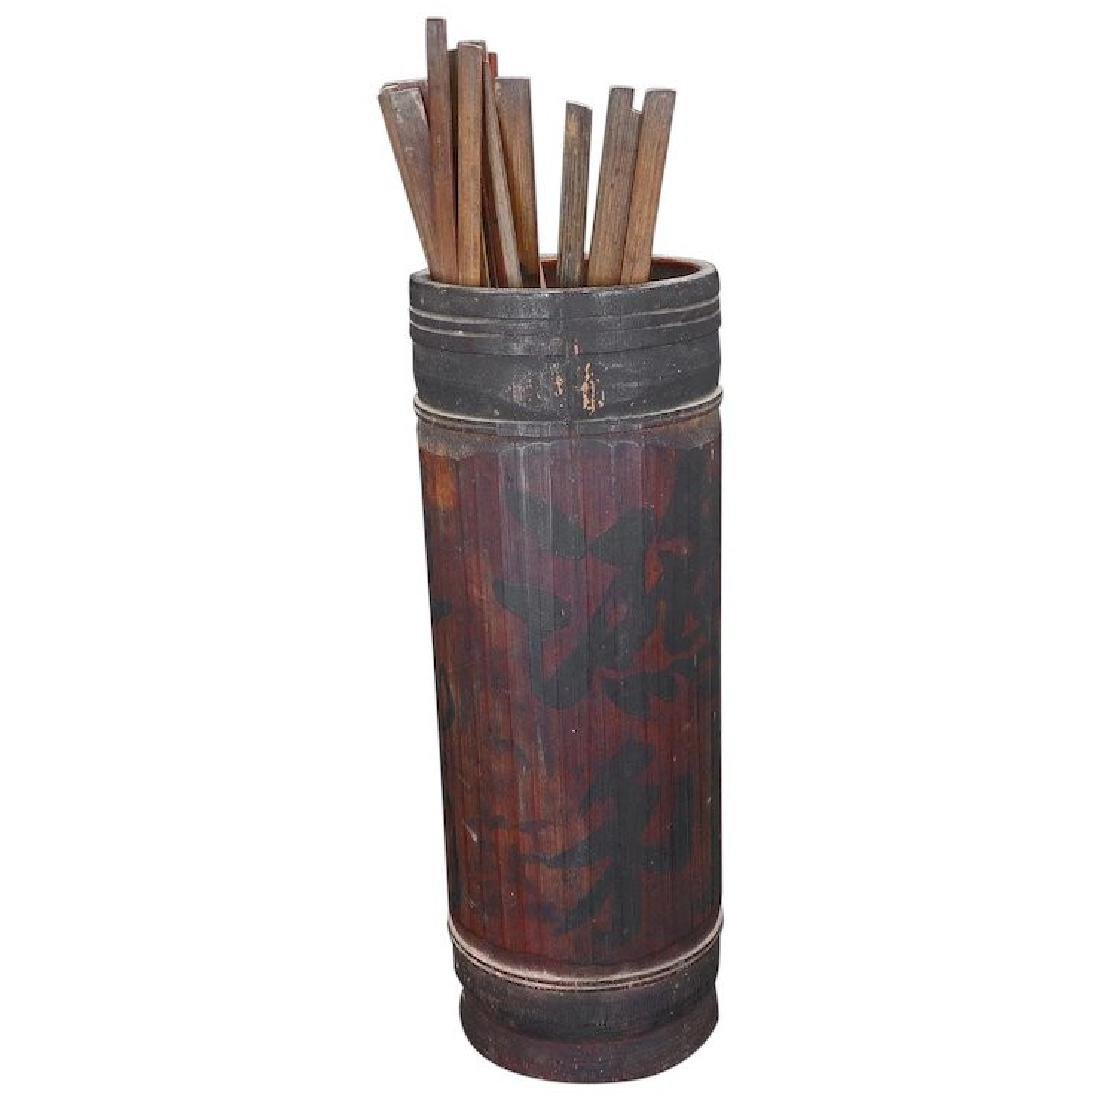 Chinese fortune telling bamboo holder and bamboo